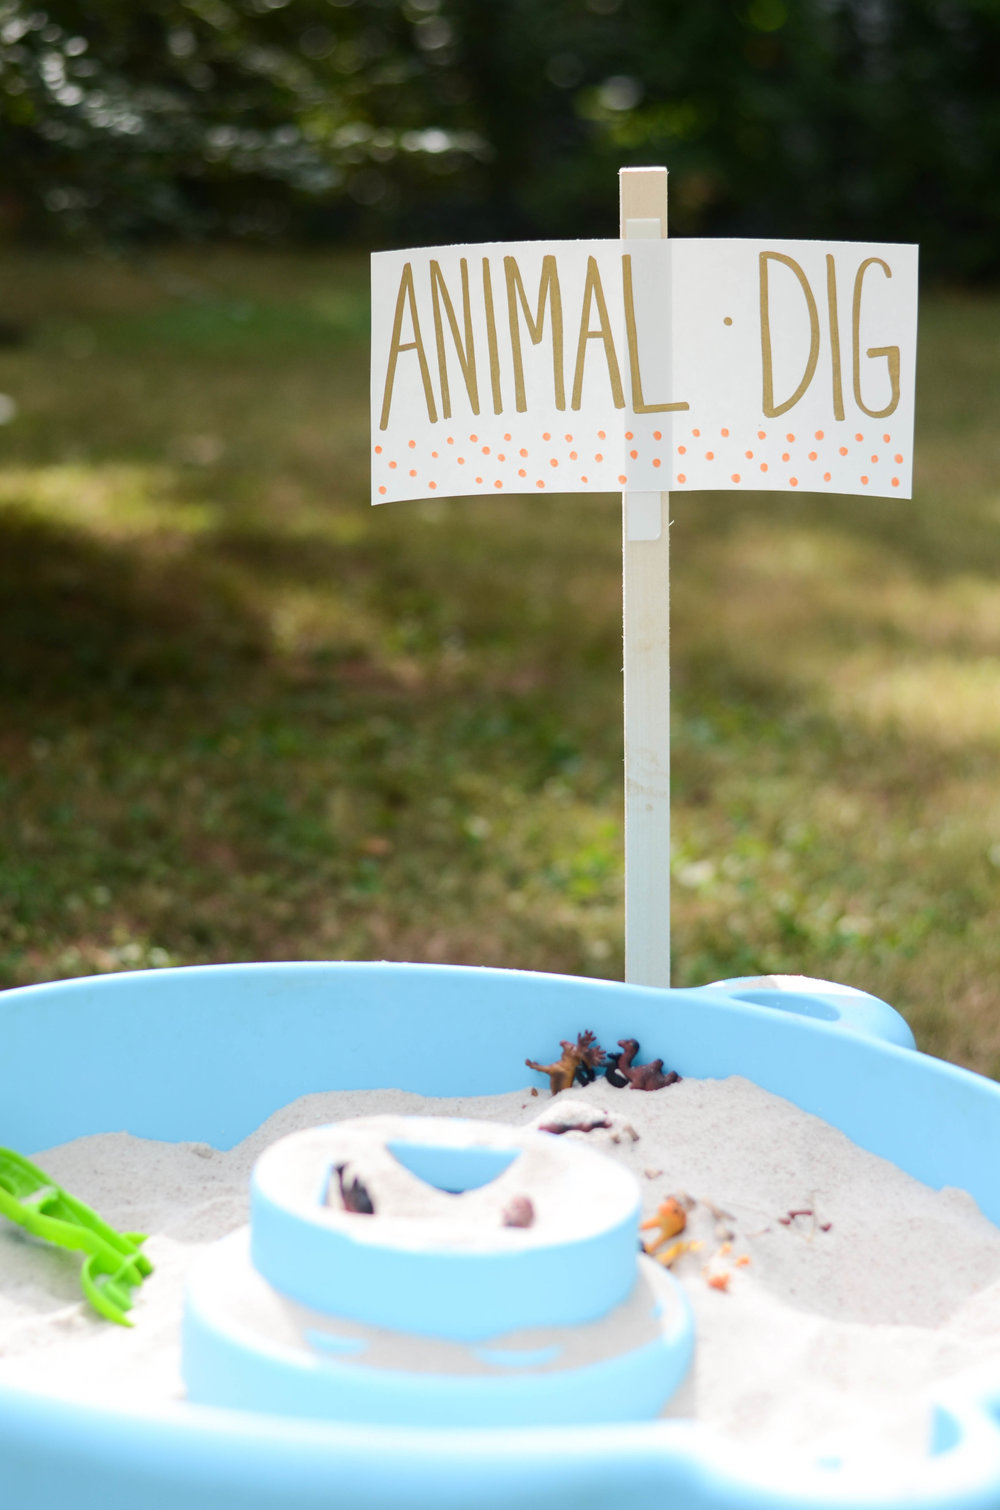 Toddler Birthday Party Ideas | Animal Dig